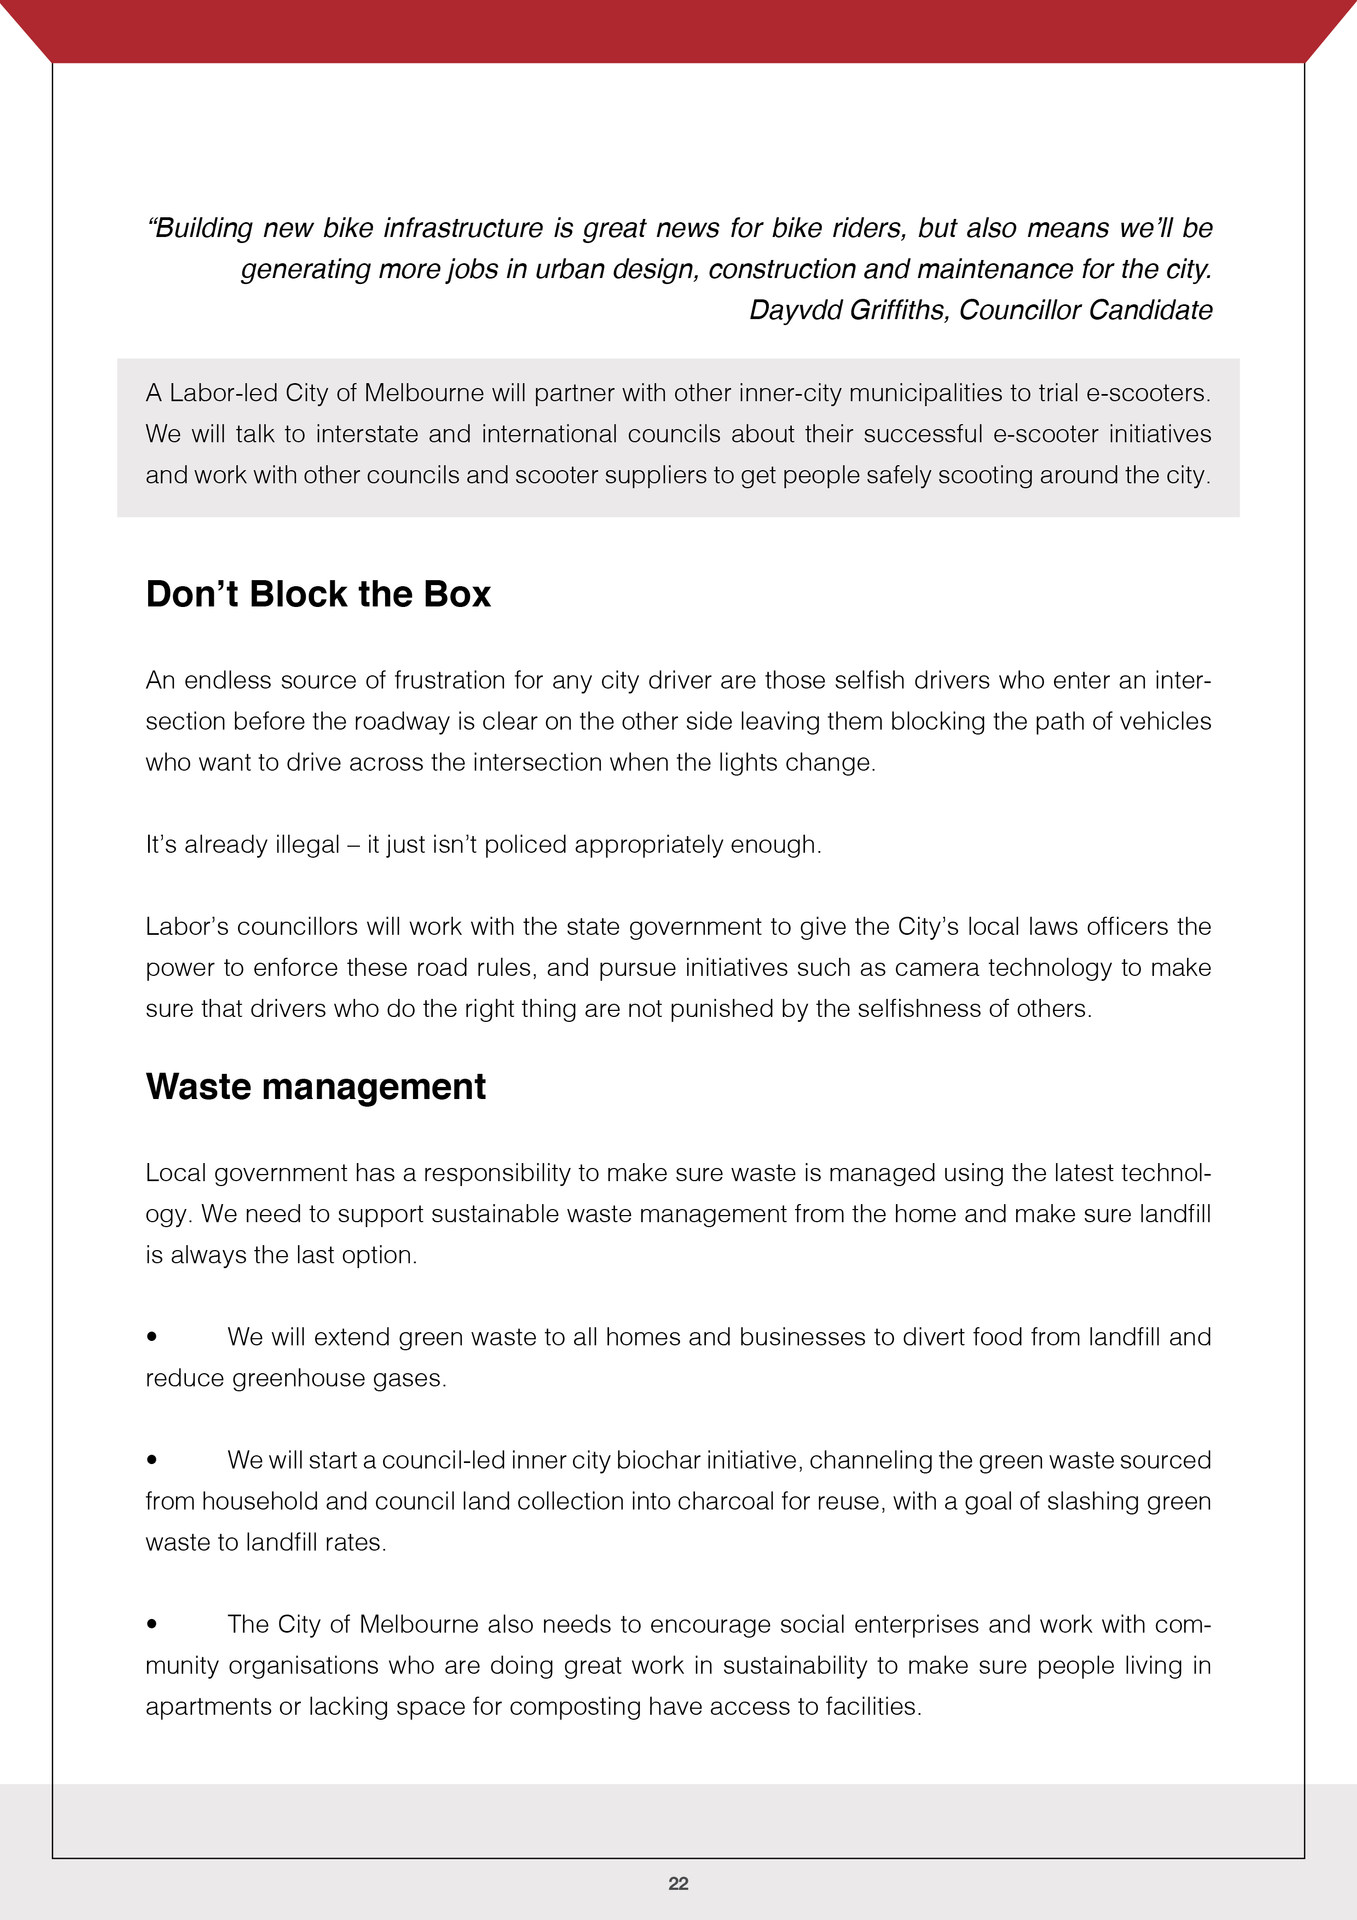 policy document for web22.jpg